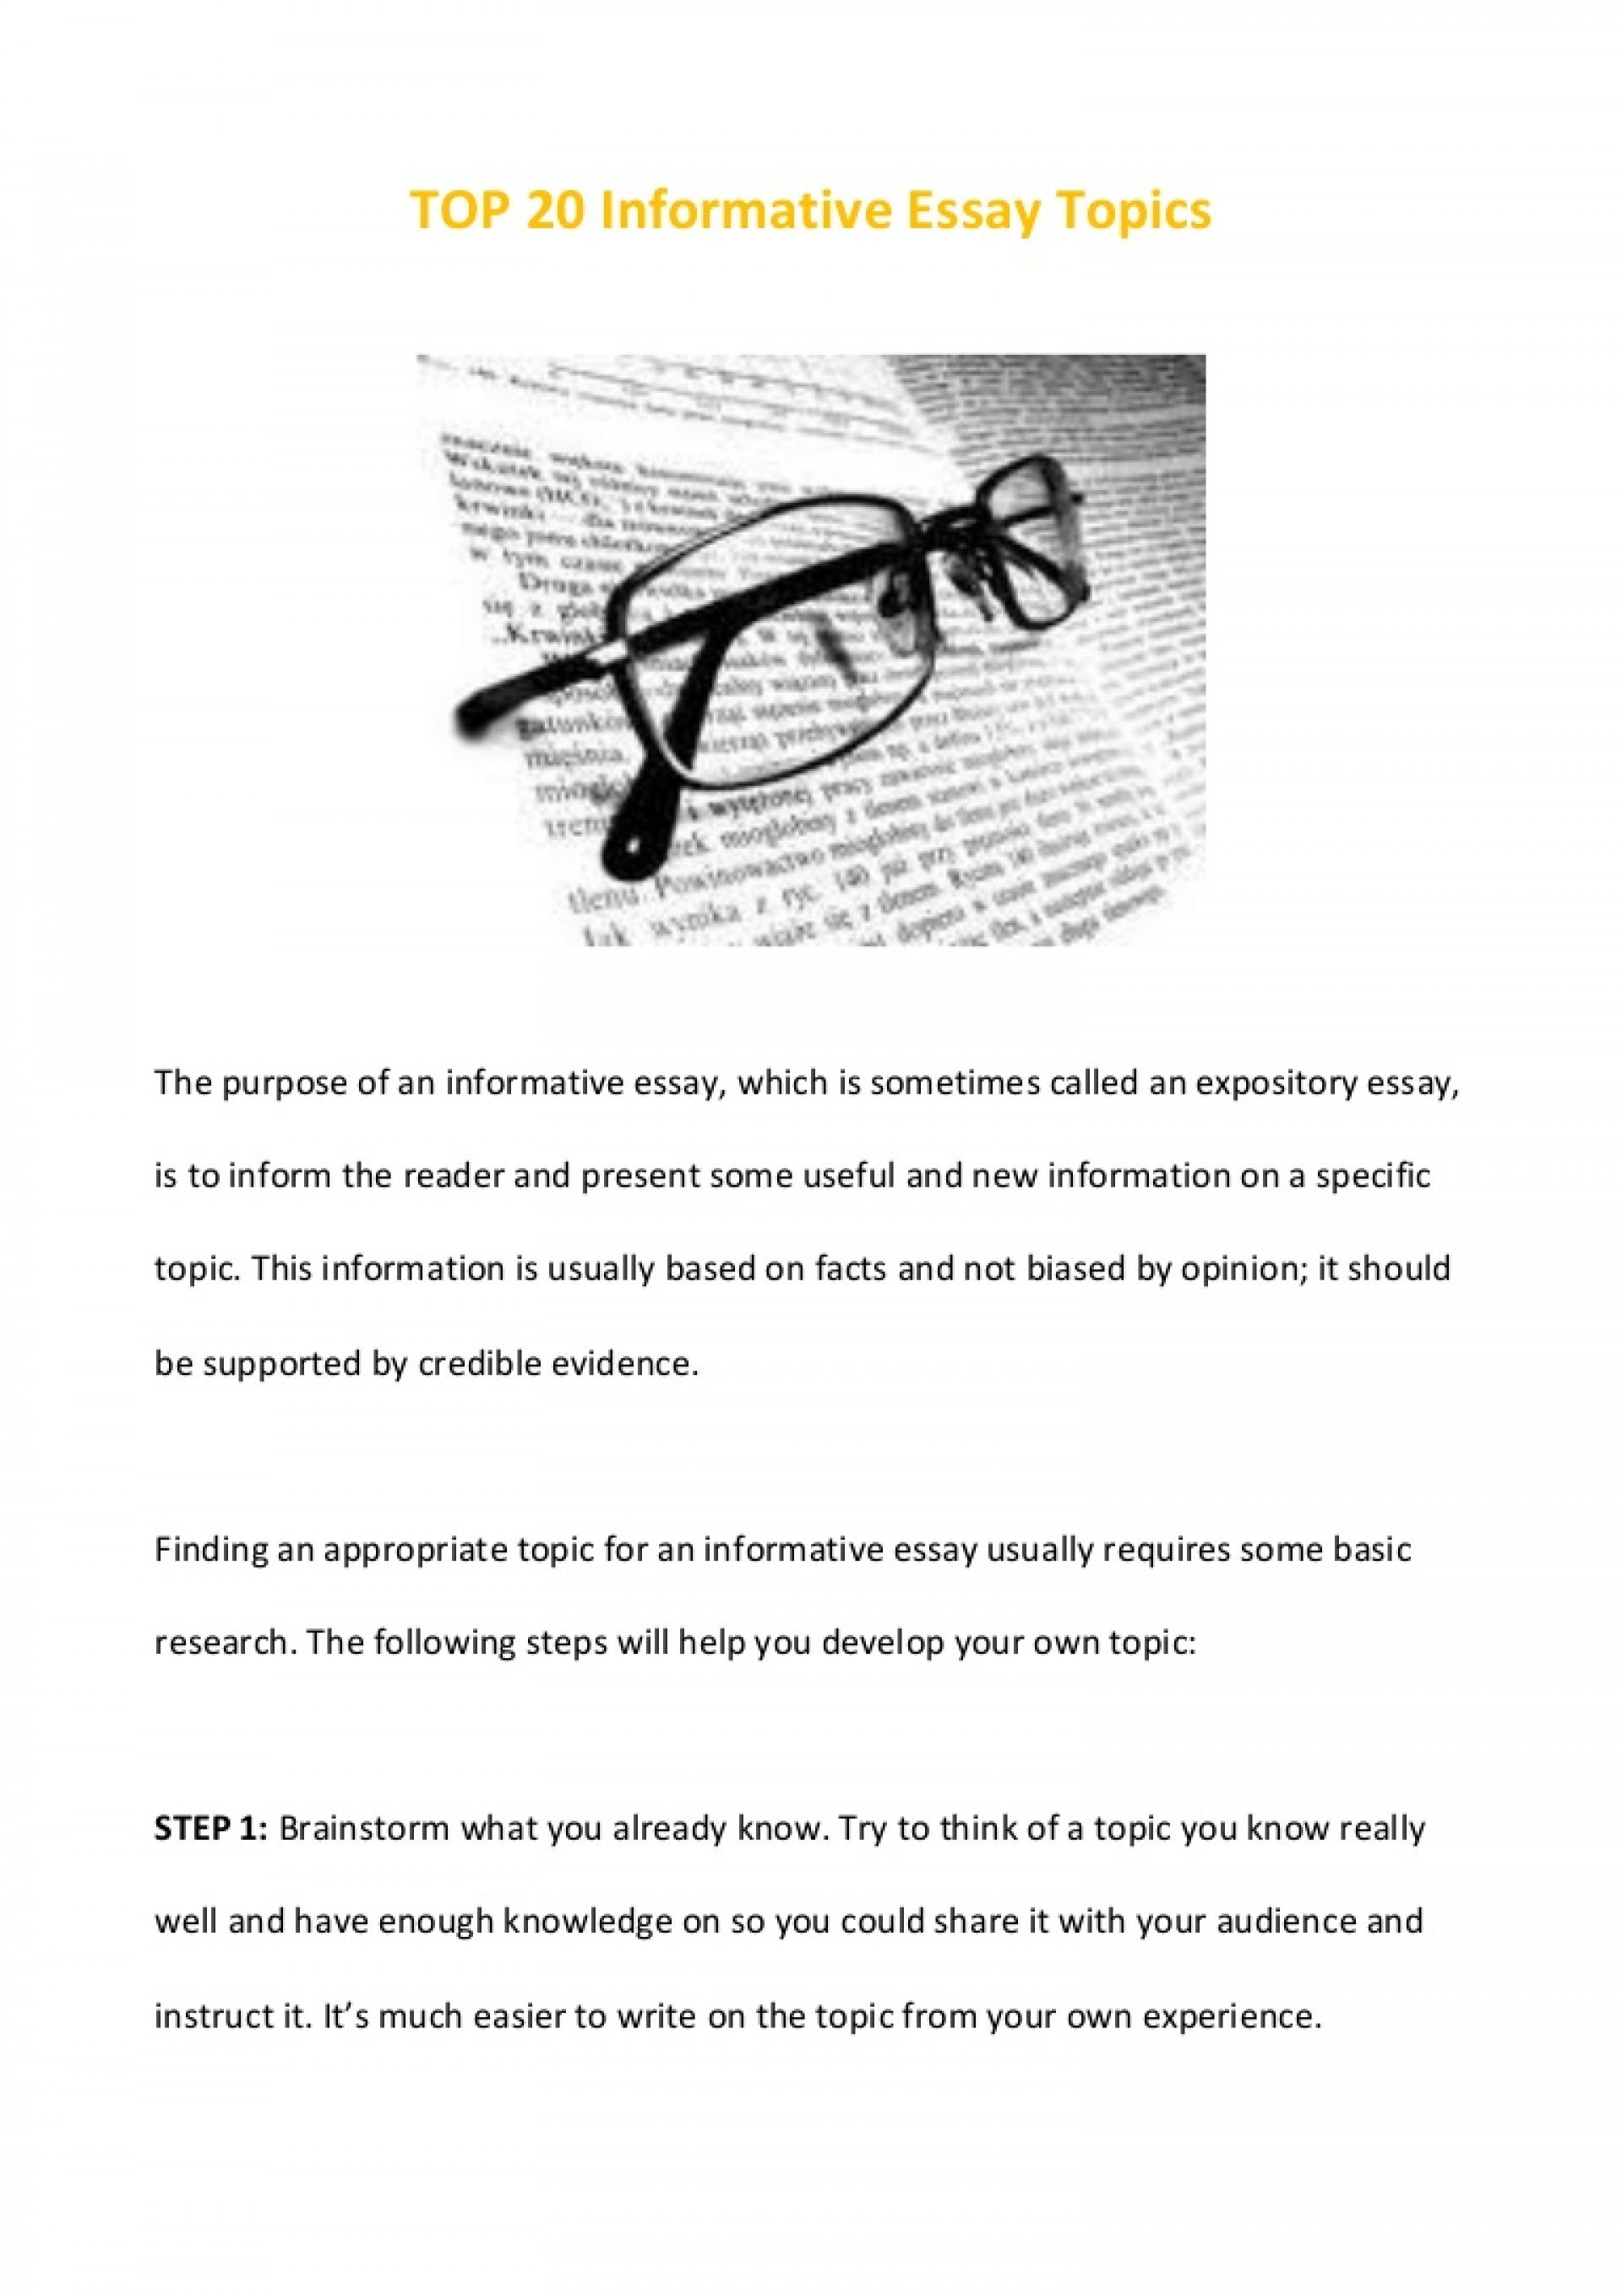 011 Essay Example Top20informativeessaytopics Phpapp02 Thumbnail Informative Remarkable Topics Prompt 4th Grade Prompts For High School Expository College Students 1920